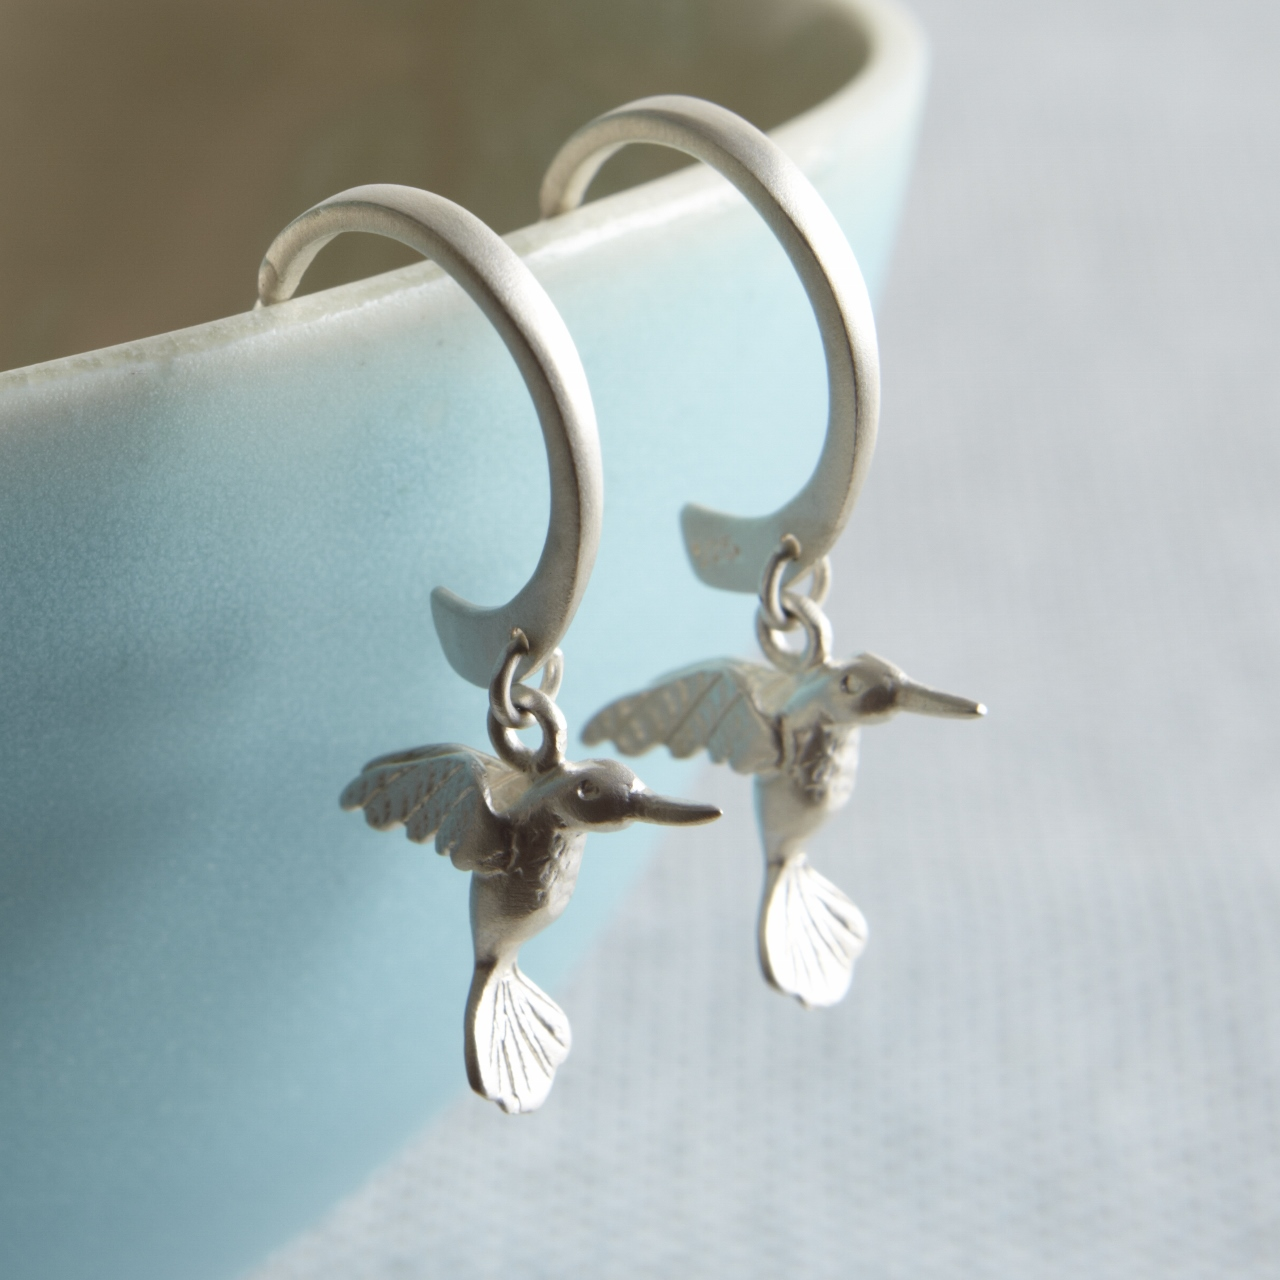 Hummingbird earring photo